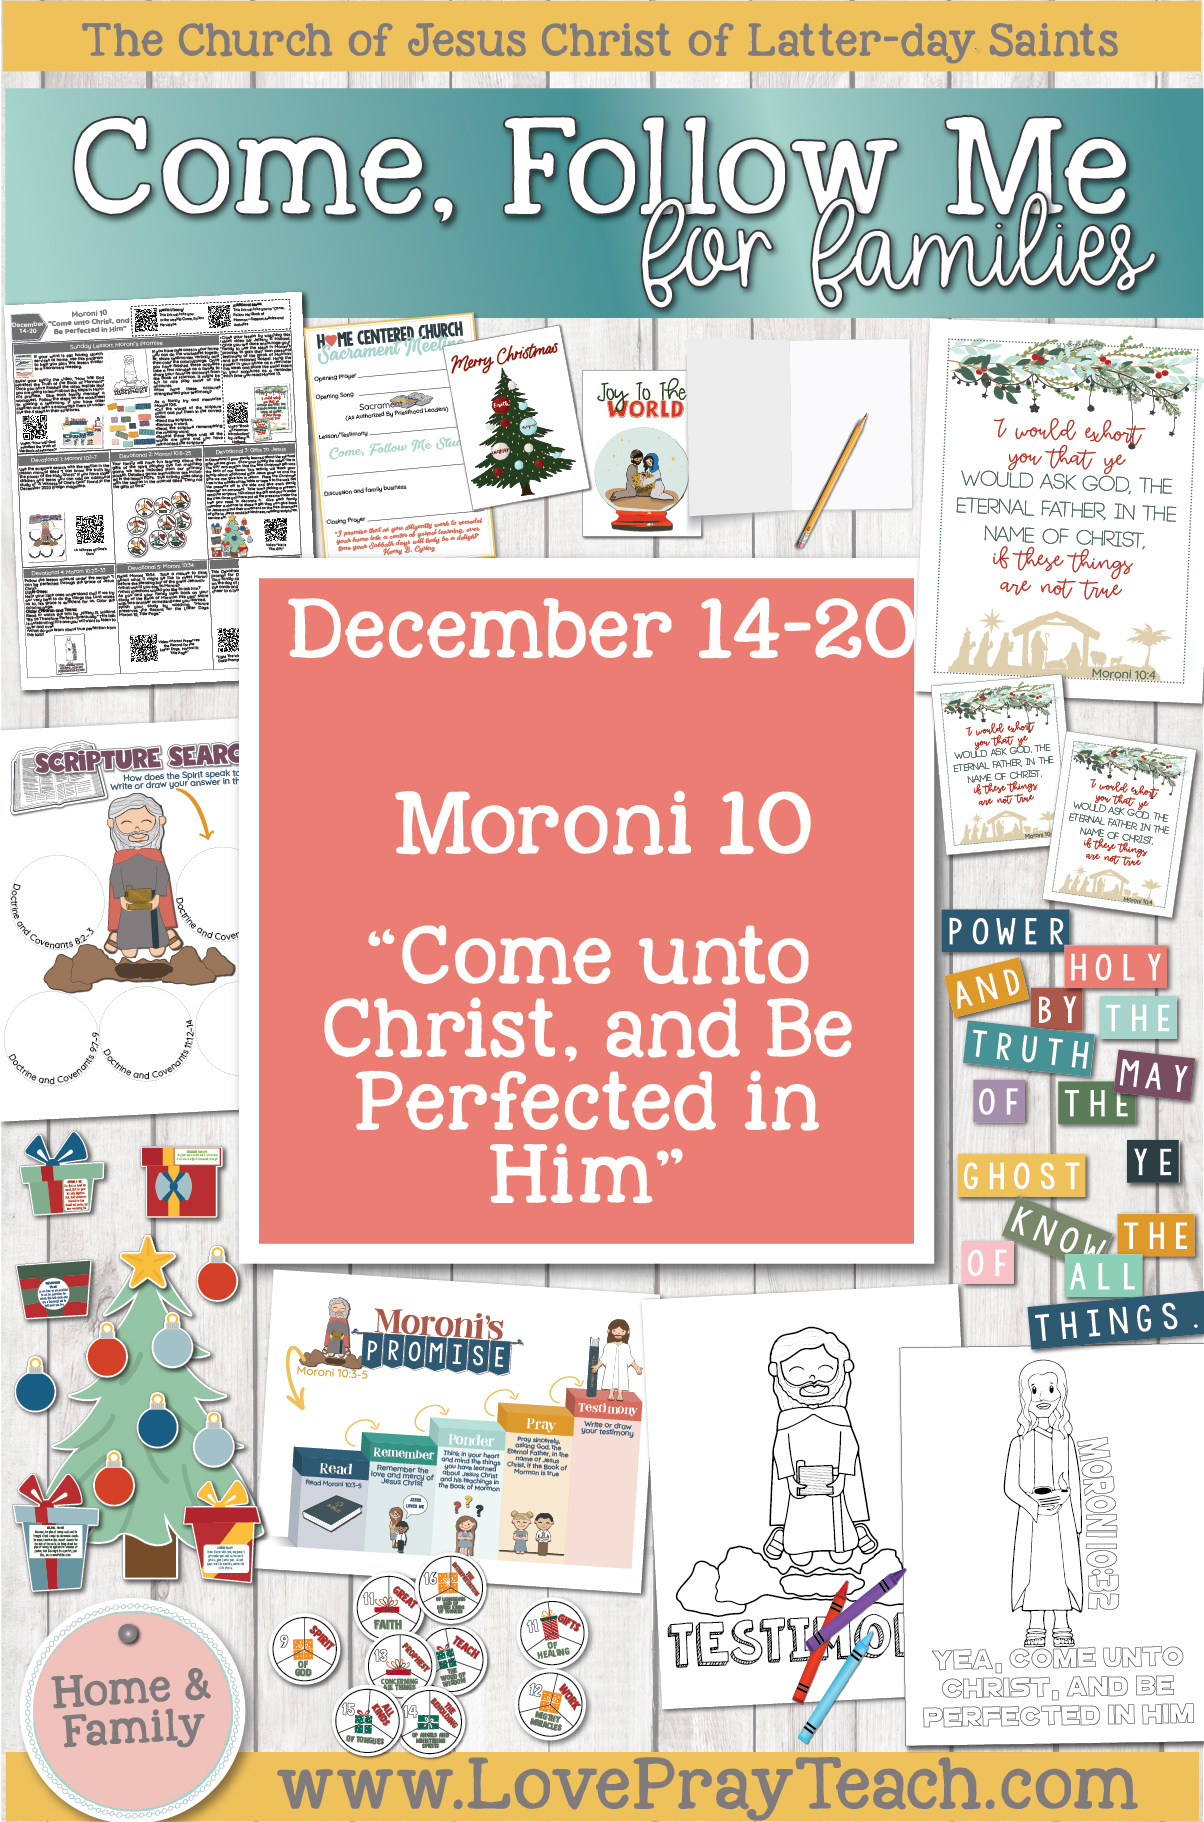 "Come, Follow Me—For Individuals and Families: Book of Mormon 2020 -December Week 3-December 14-20, Moroni 10 ""Come unto Christ, and Be Perfected in Him"""